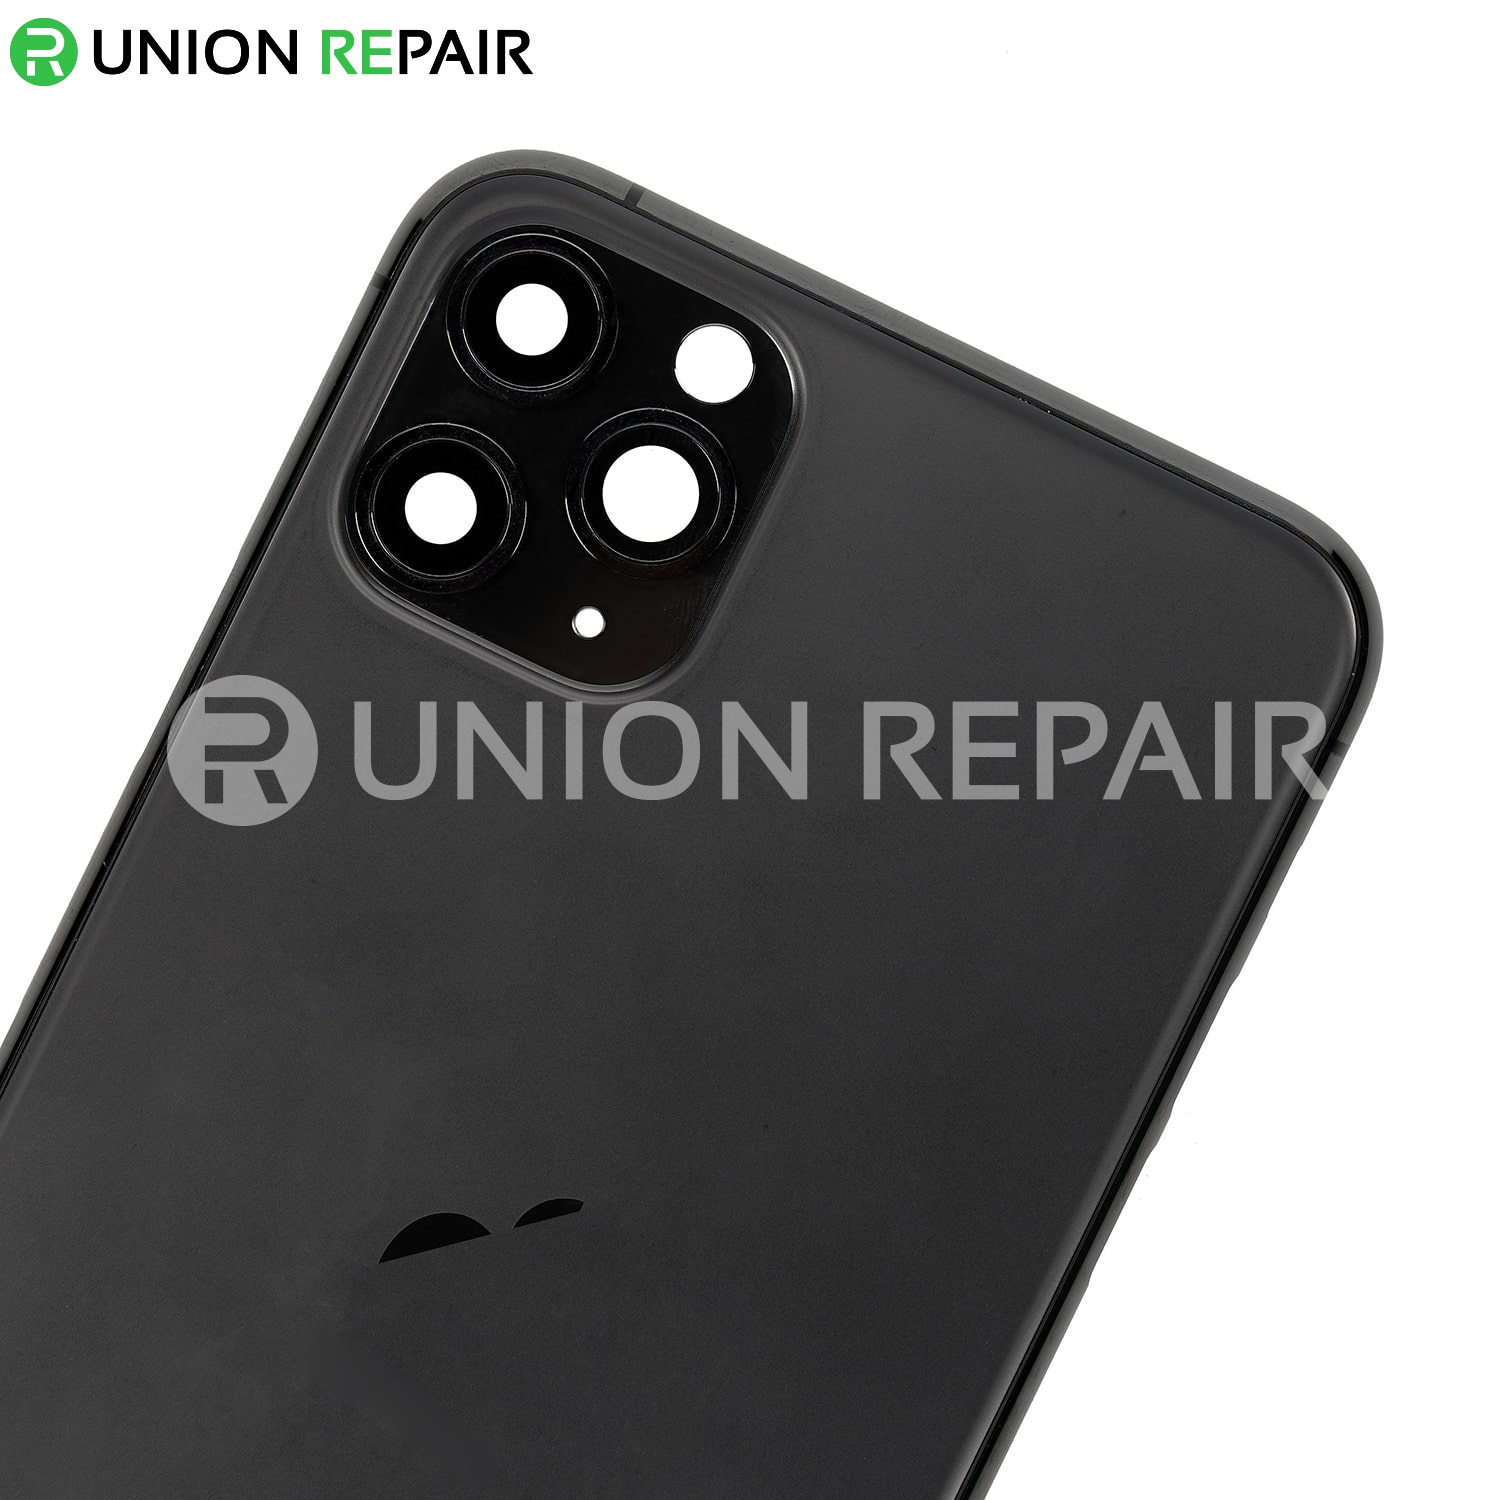 Replacement for iPhone 11 Pro MAX Rear Housing with Frame - Space Gray